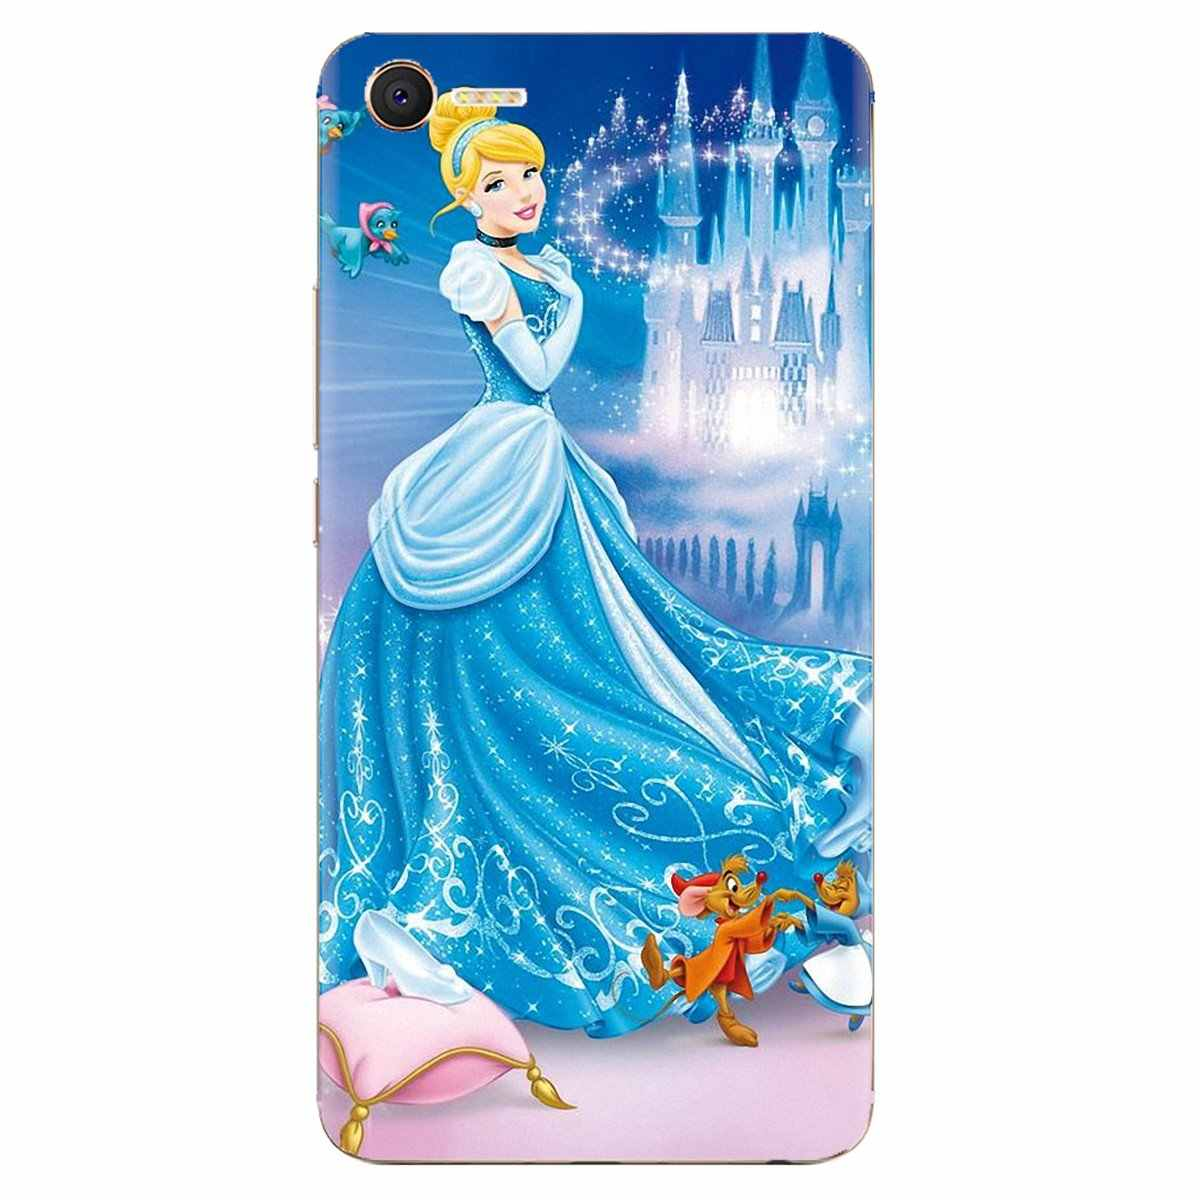 Cartoon Cinderella Glass Slipper Kasteel Soft Cover Voor Huawei Nova 2 3 2i 3i Y6 Y7 Y9 Prime Pro GR3 GR5 2017 2018 2019 Y5II Y6II